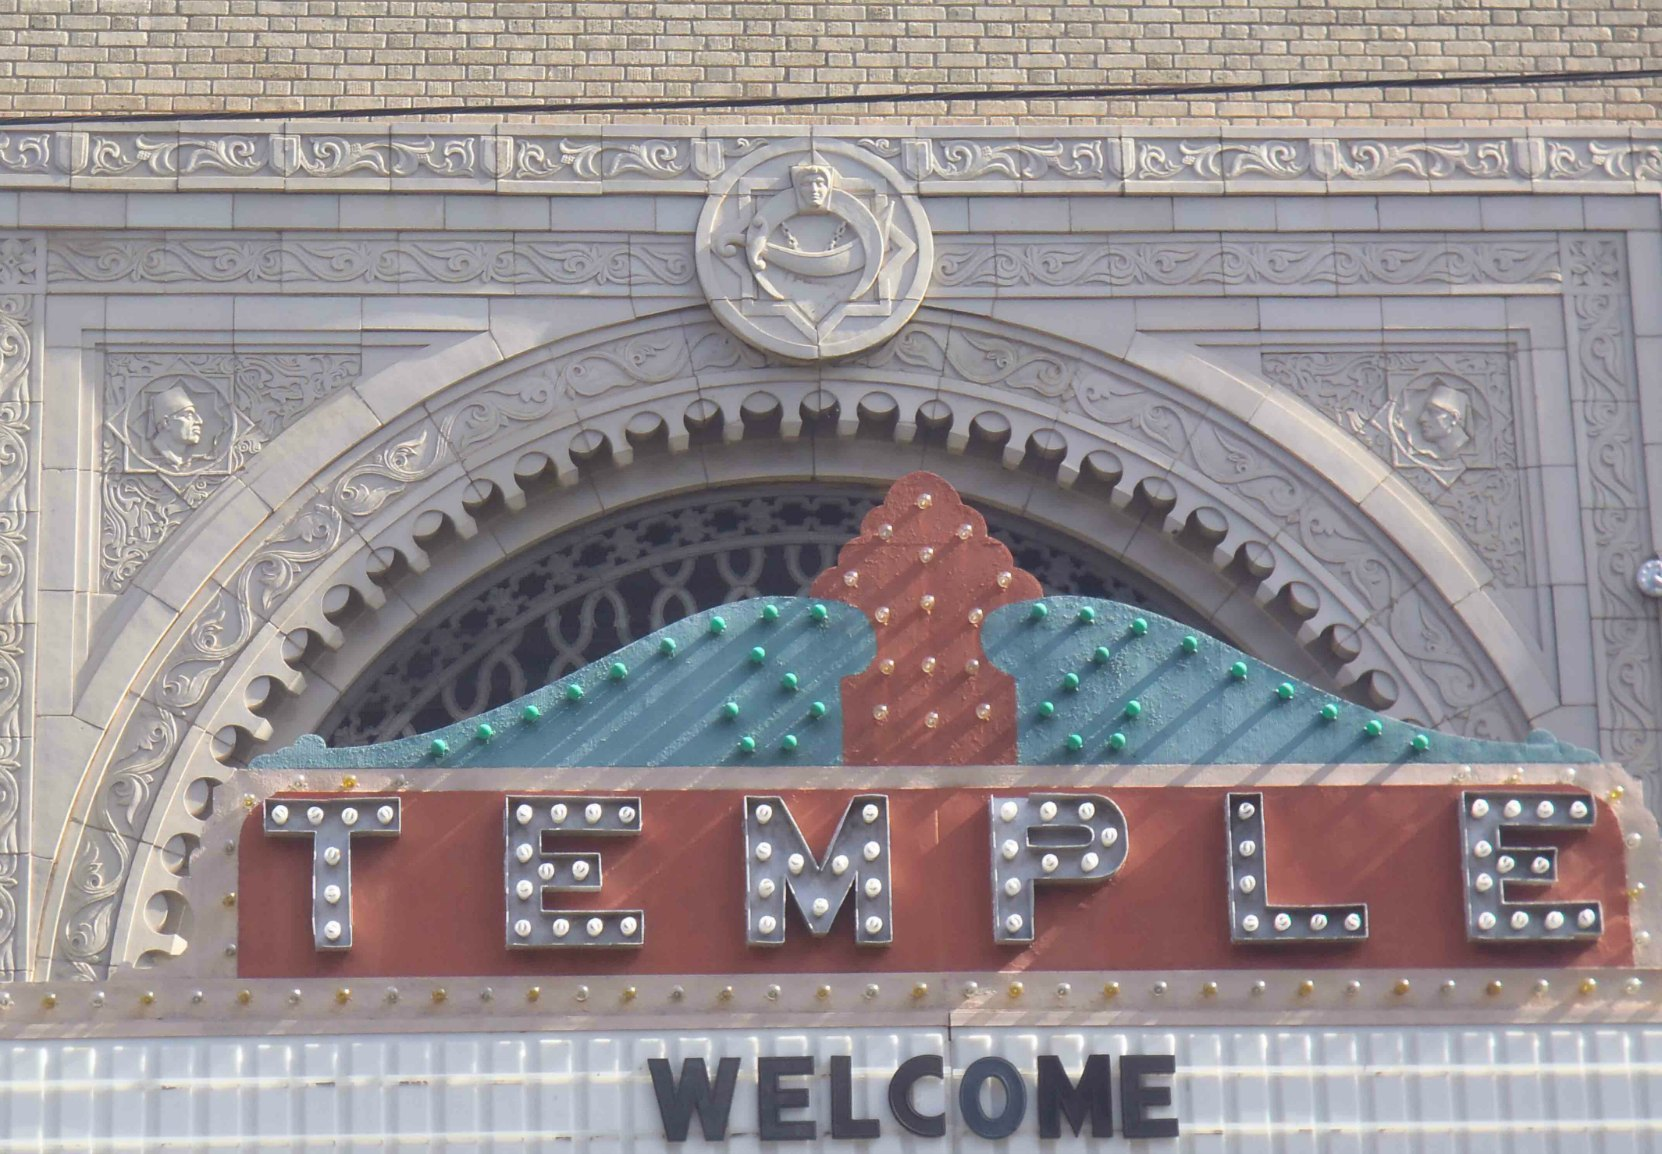 Architectural detail at the entrance to the Temple Theater, Meridian, Mississippi. Note the Shriners emblem at the top of the arch.